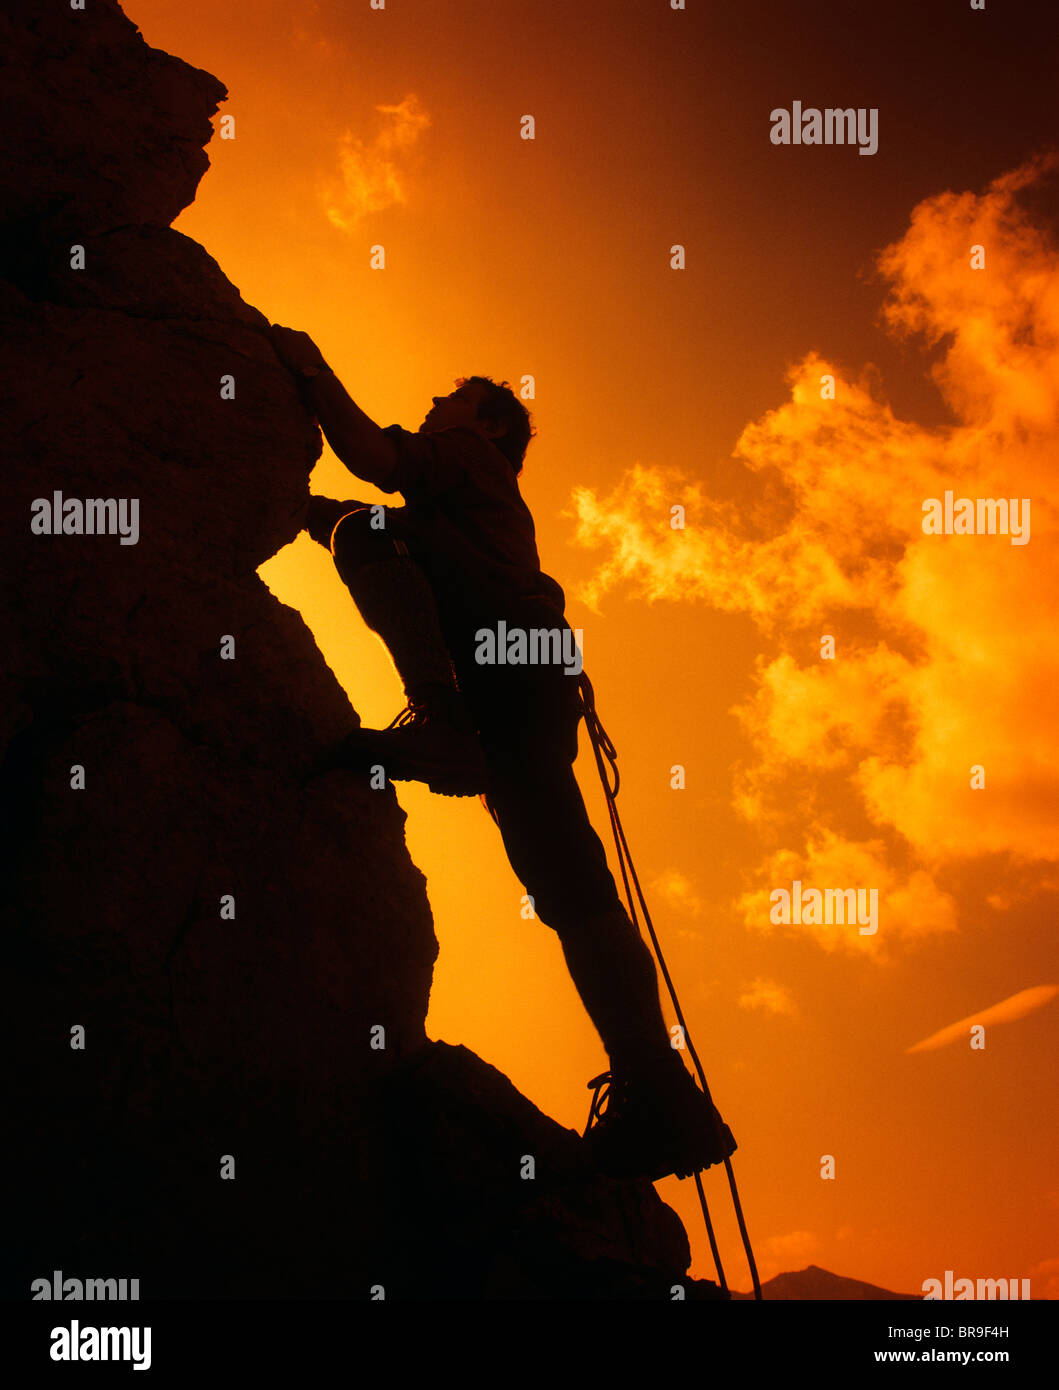 SILHOUETTE OF MAN ROCK CLIMBING AGAINST SUNSET SKY - Stock Image